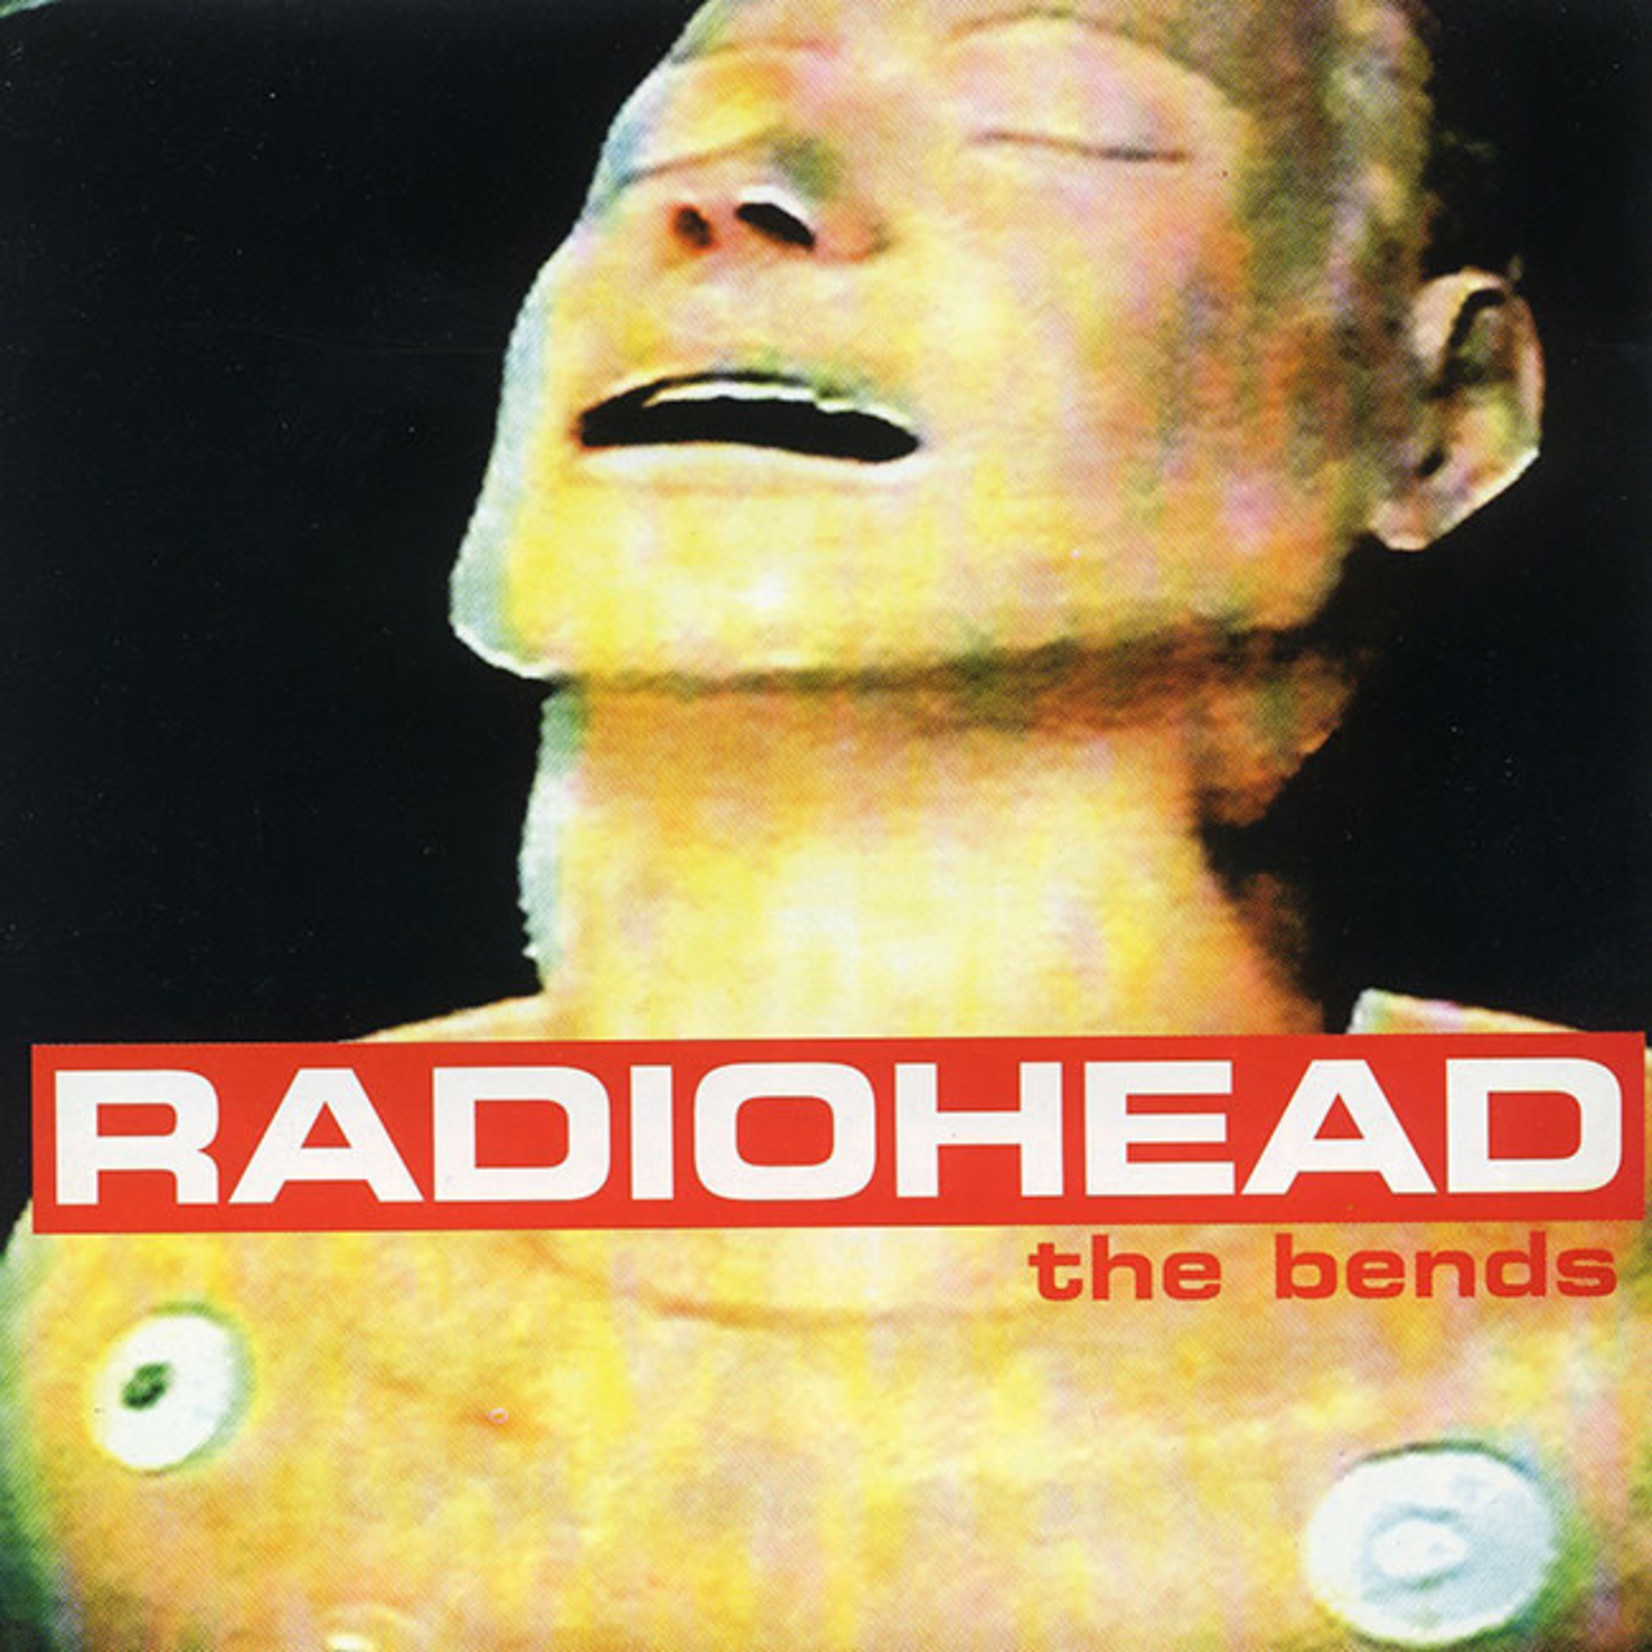 [New] Radiohead: The Bends